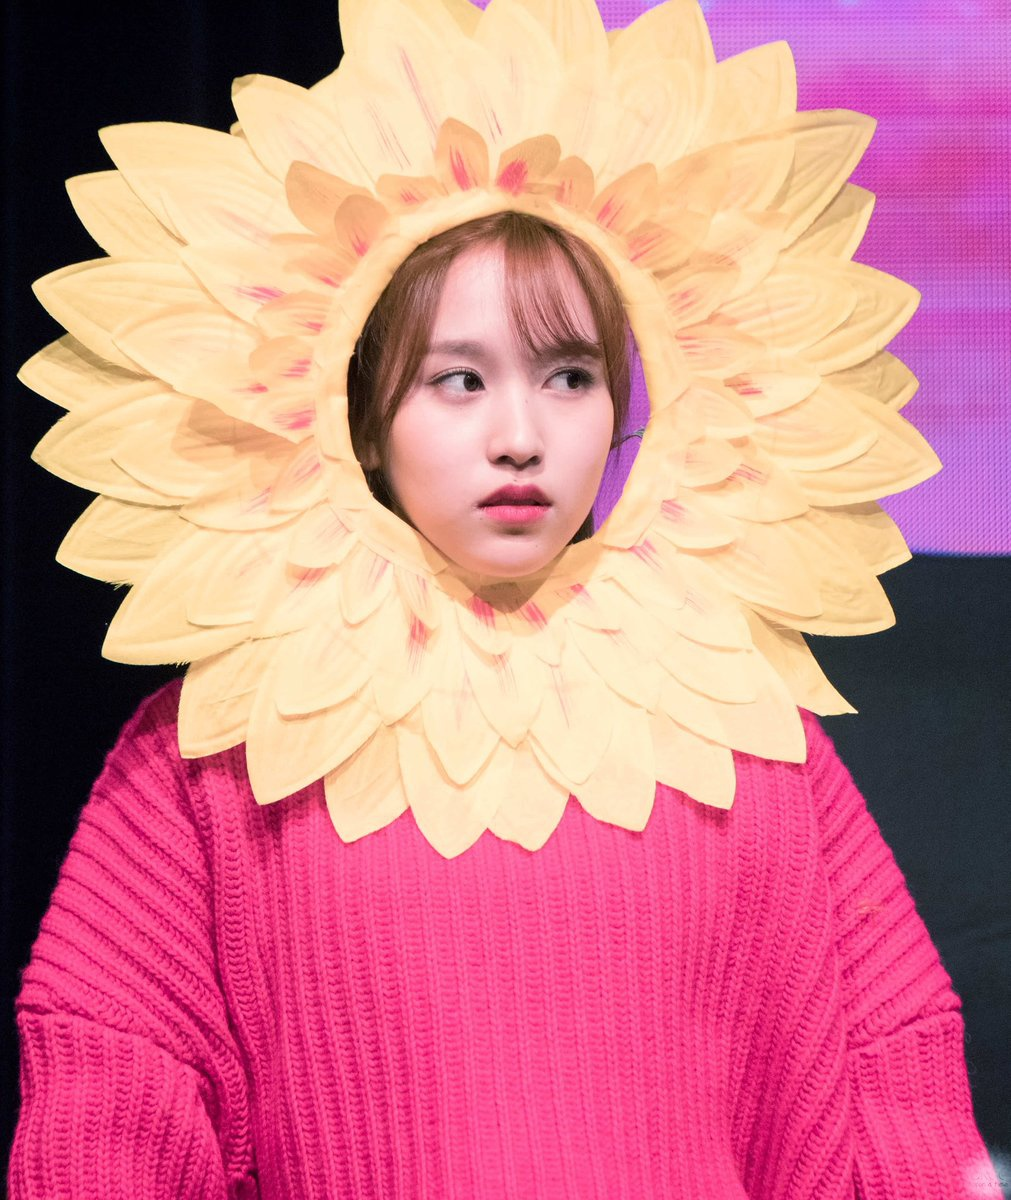 Happy Birthday Mina unnie💚 Thanks for being born💚 Thanks for being you💚 And thanks for your presence in my youth😏 I wish you all the best💚